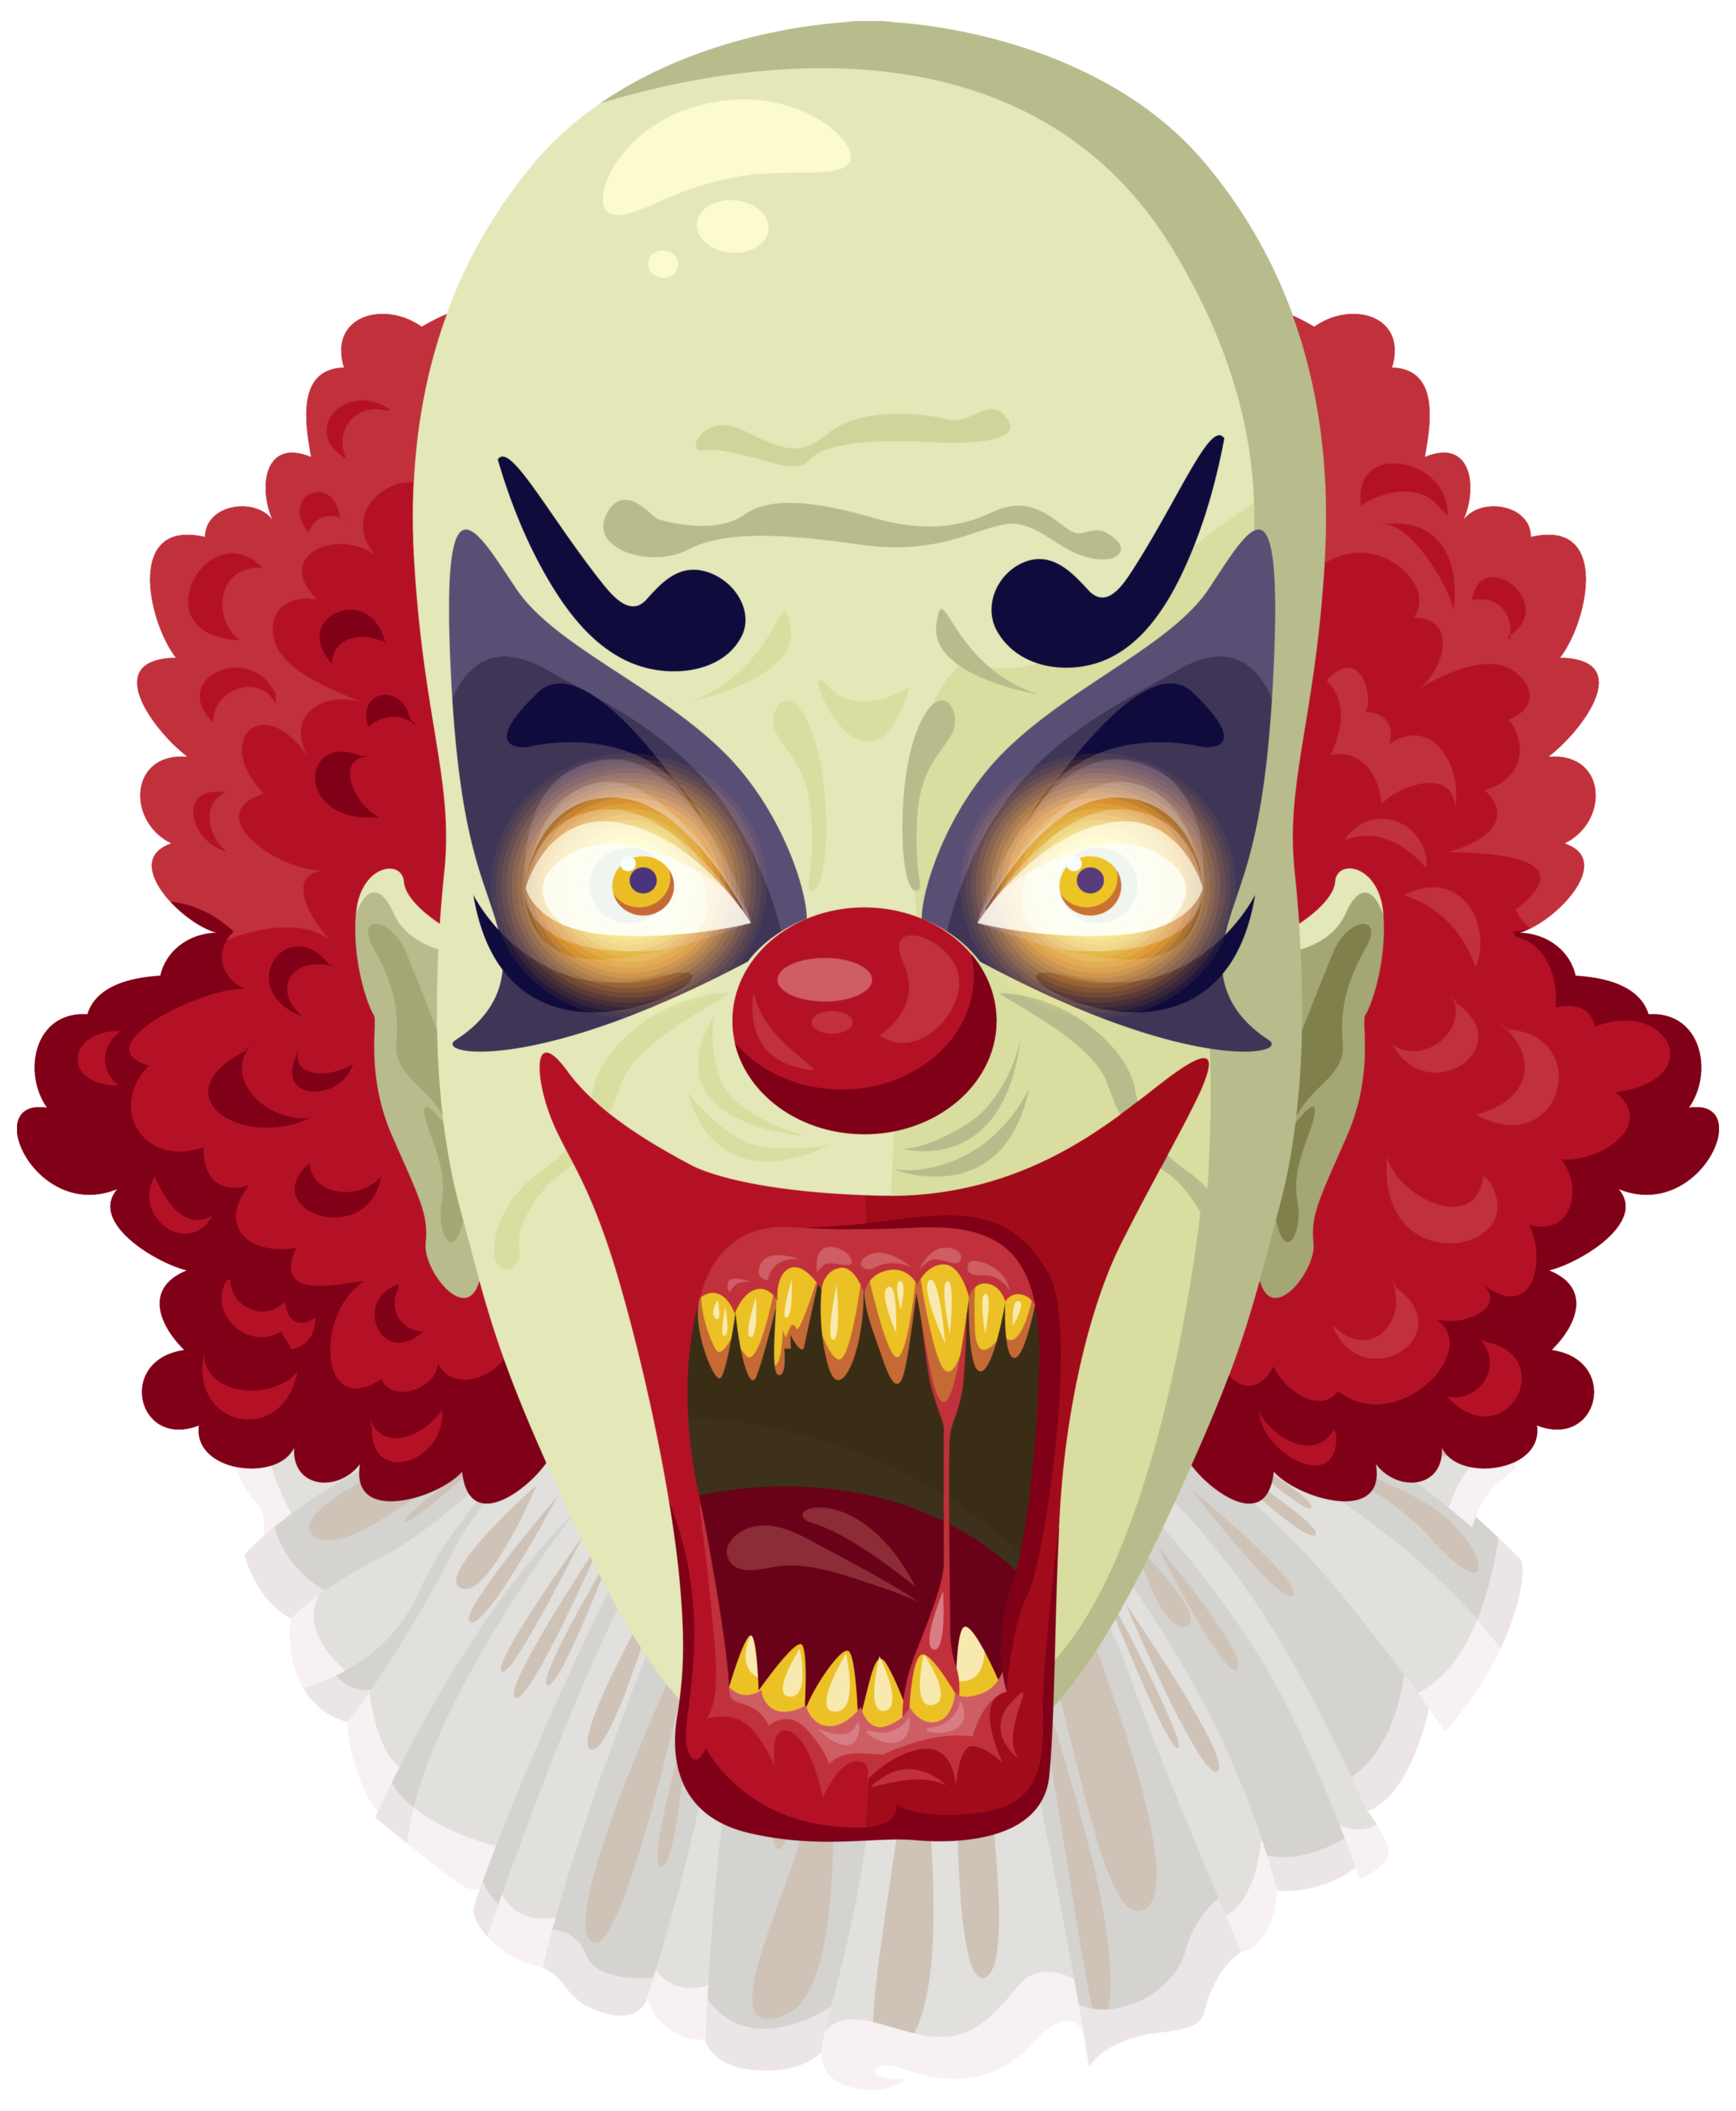 Scary clipart image gallery. Evil clown png banner free library